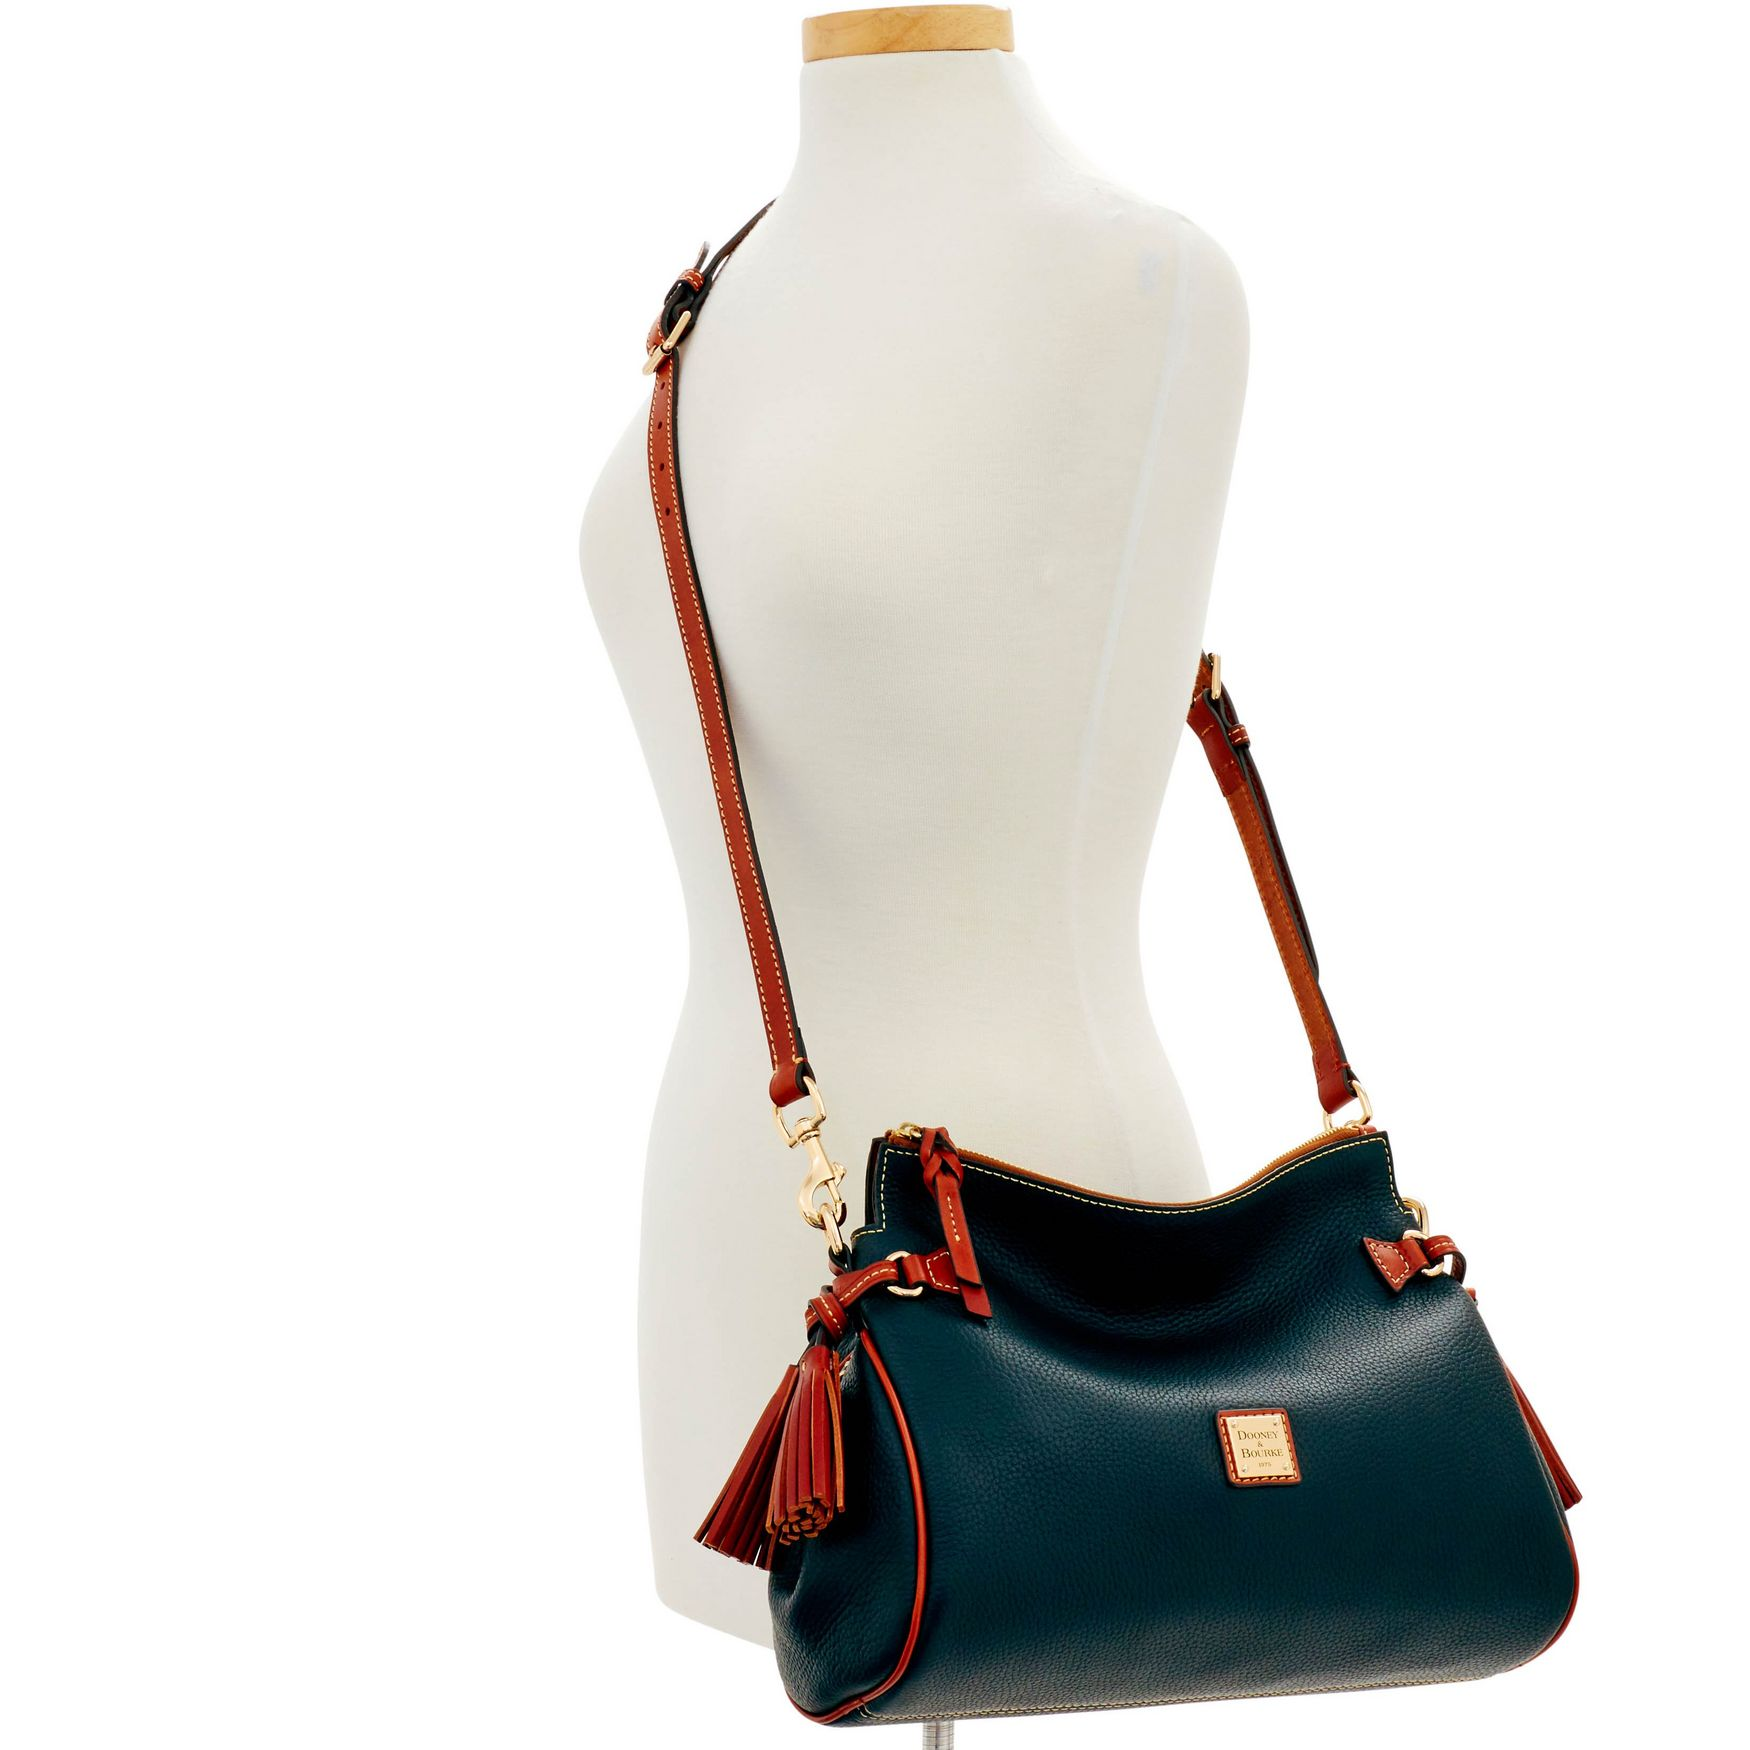 Dooney-amp-Bourke-Pebble-Grain-Medium-Zip-Crossbody-Shoulder-Bag thumbnail 6